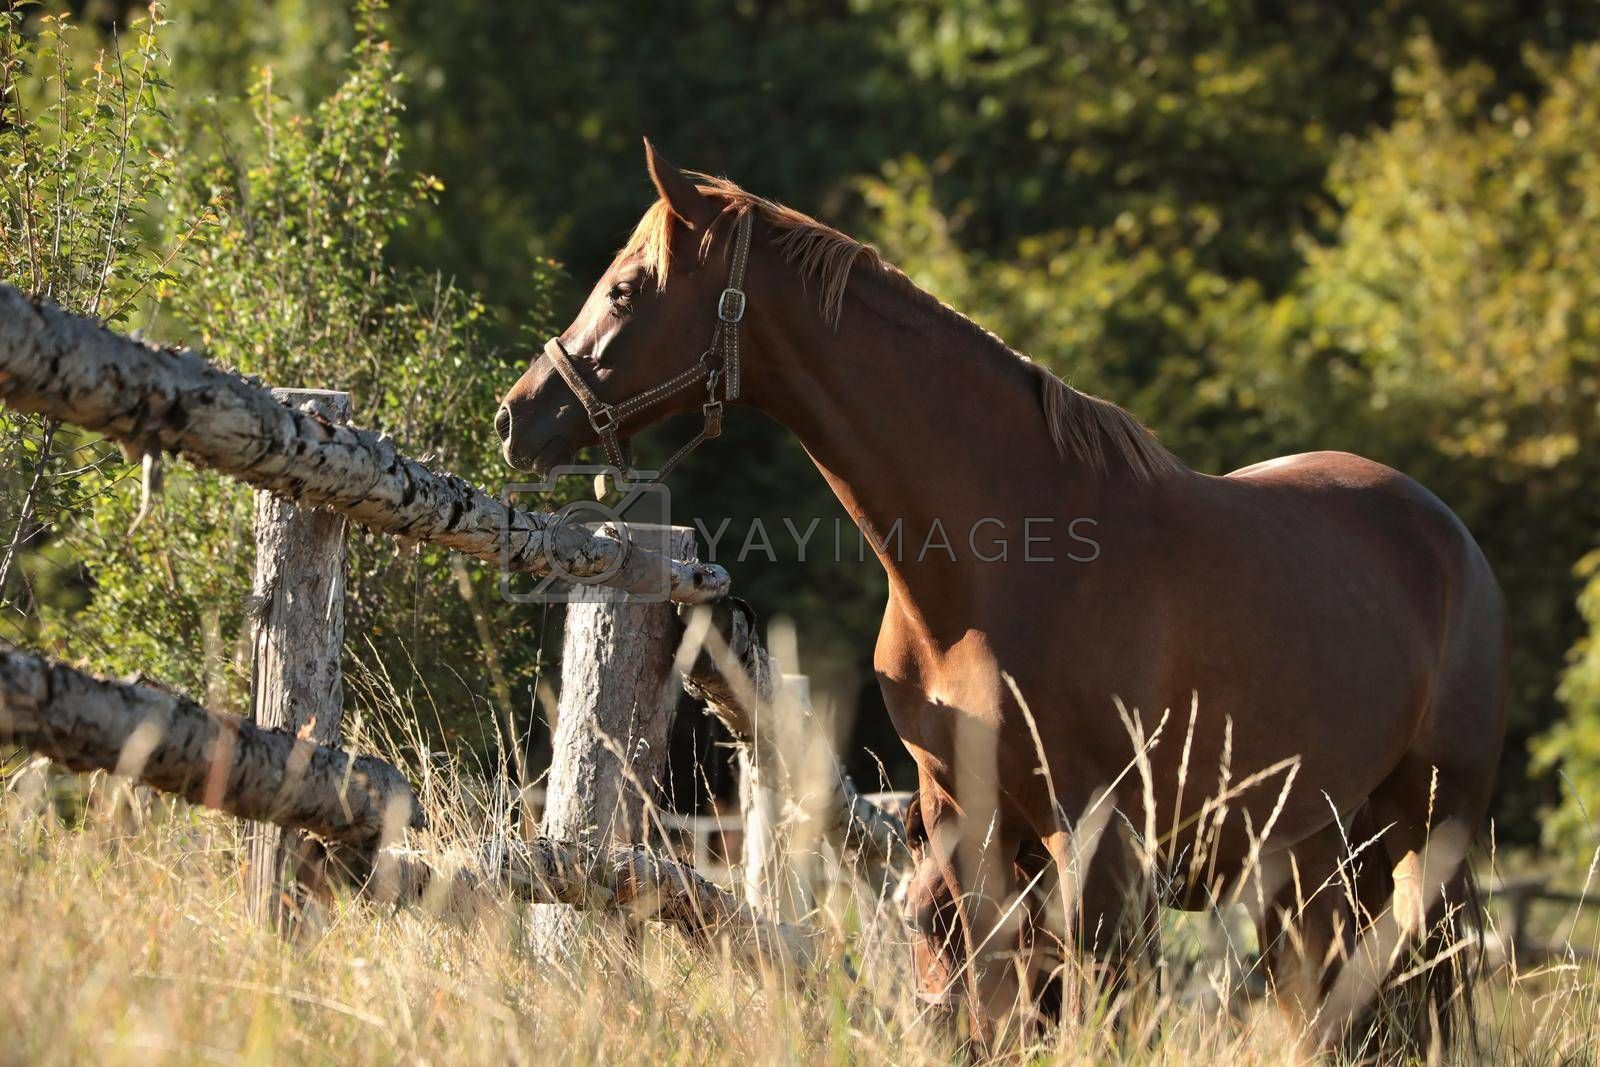 The mare looks at the other horses in the morning.